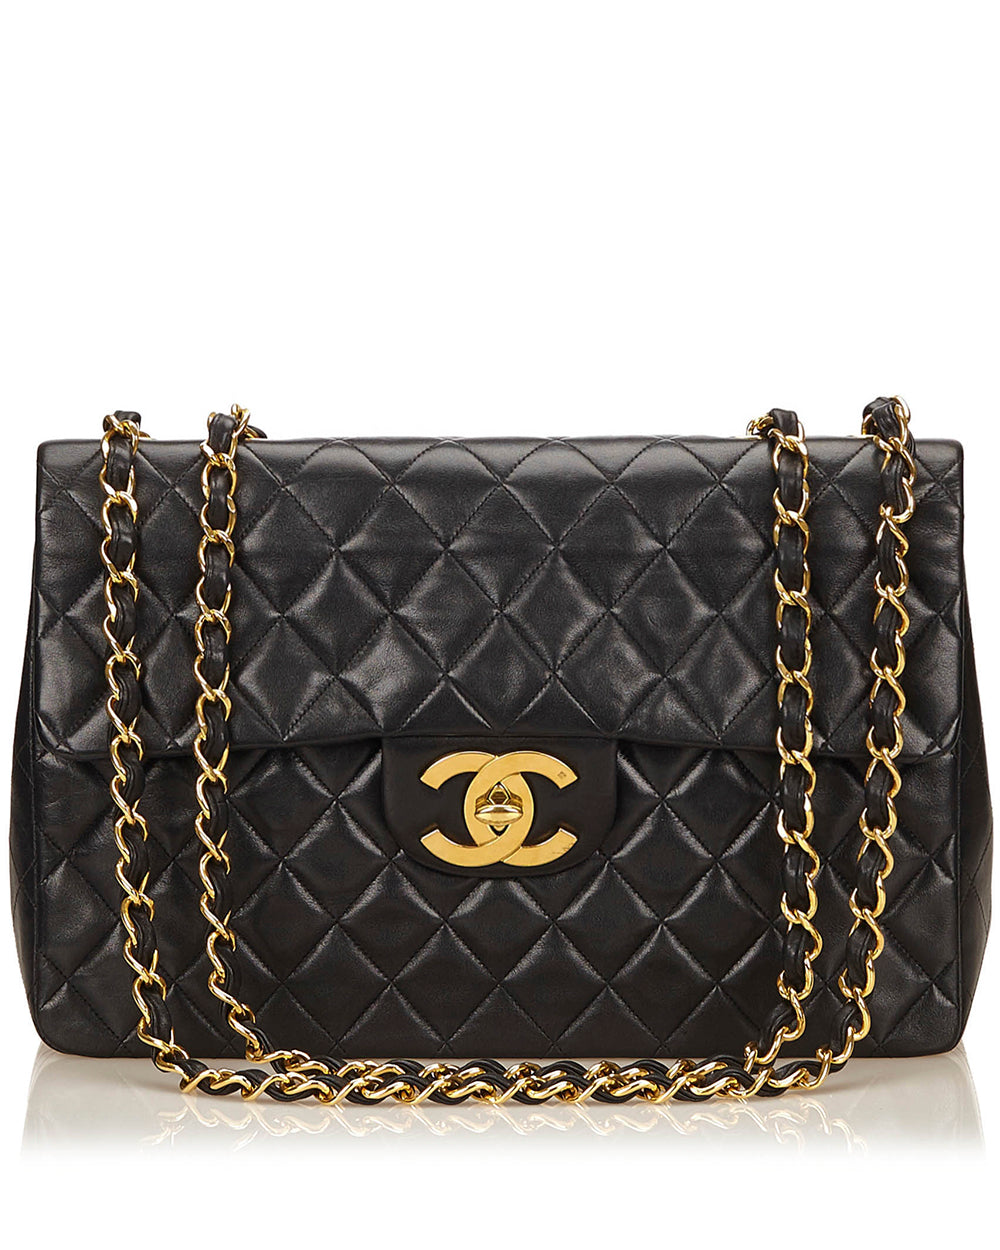 4f19a2c65fc6 Vintage Chanel Black Maxi Jumbo Lambskin Classic Flap Bag – High ...